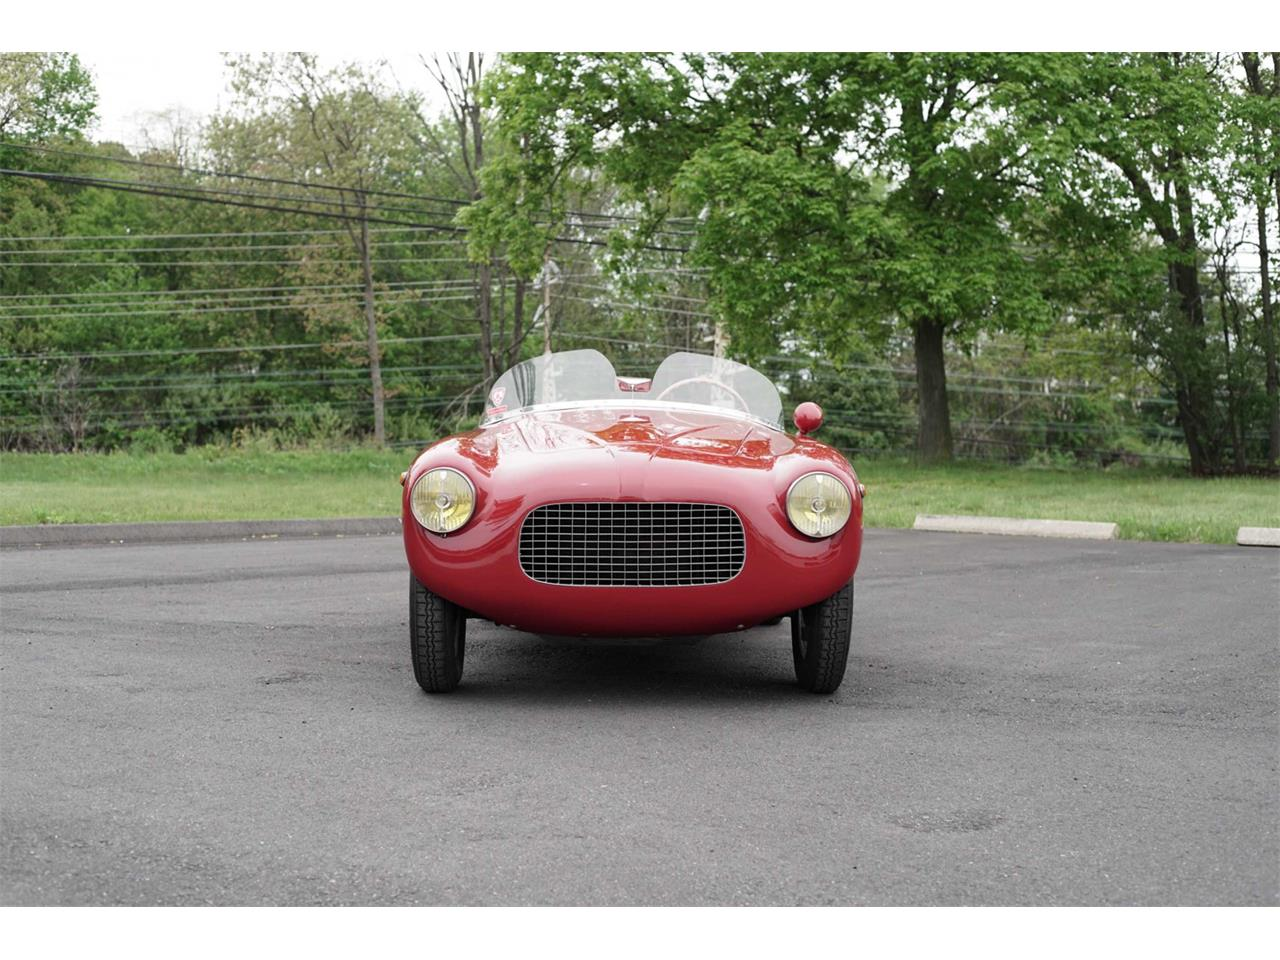 1951 Fiat Stanga Barchetta for sale in Westport, CT – photo 2